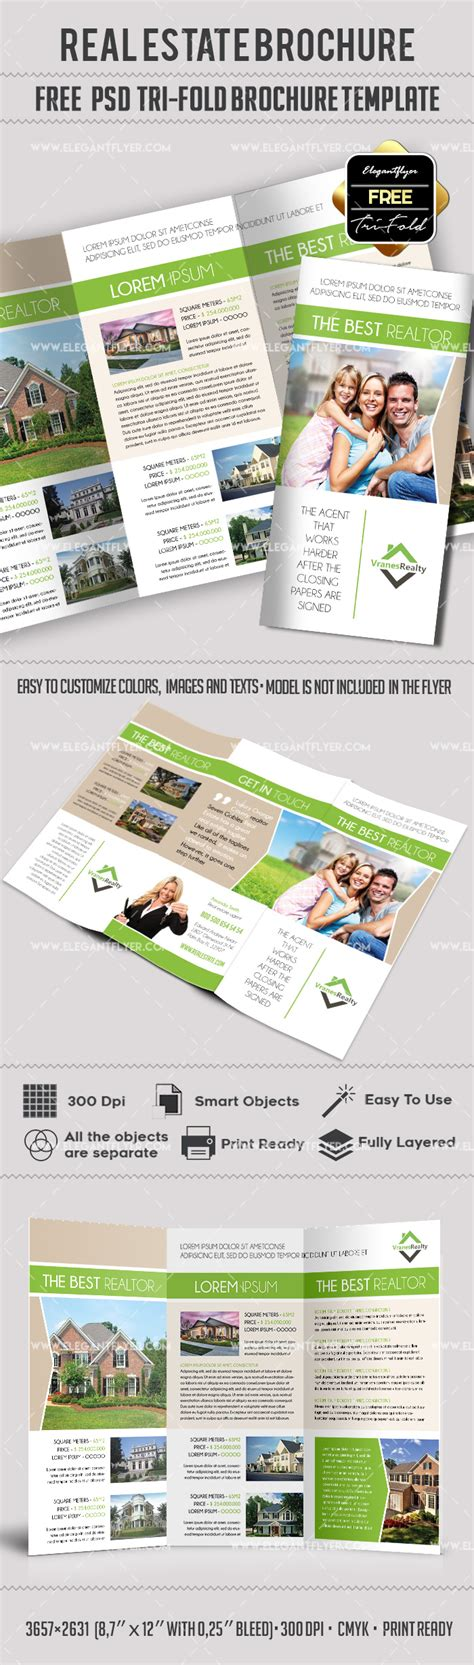 real estate brochure templates psd free free real estate trifold brochure template in psd by elegantflyer